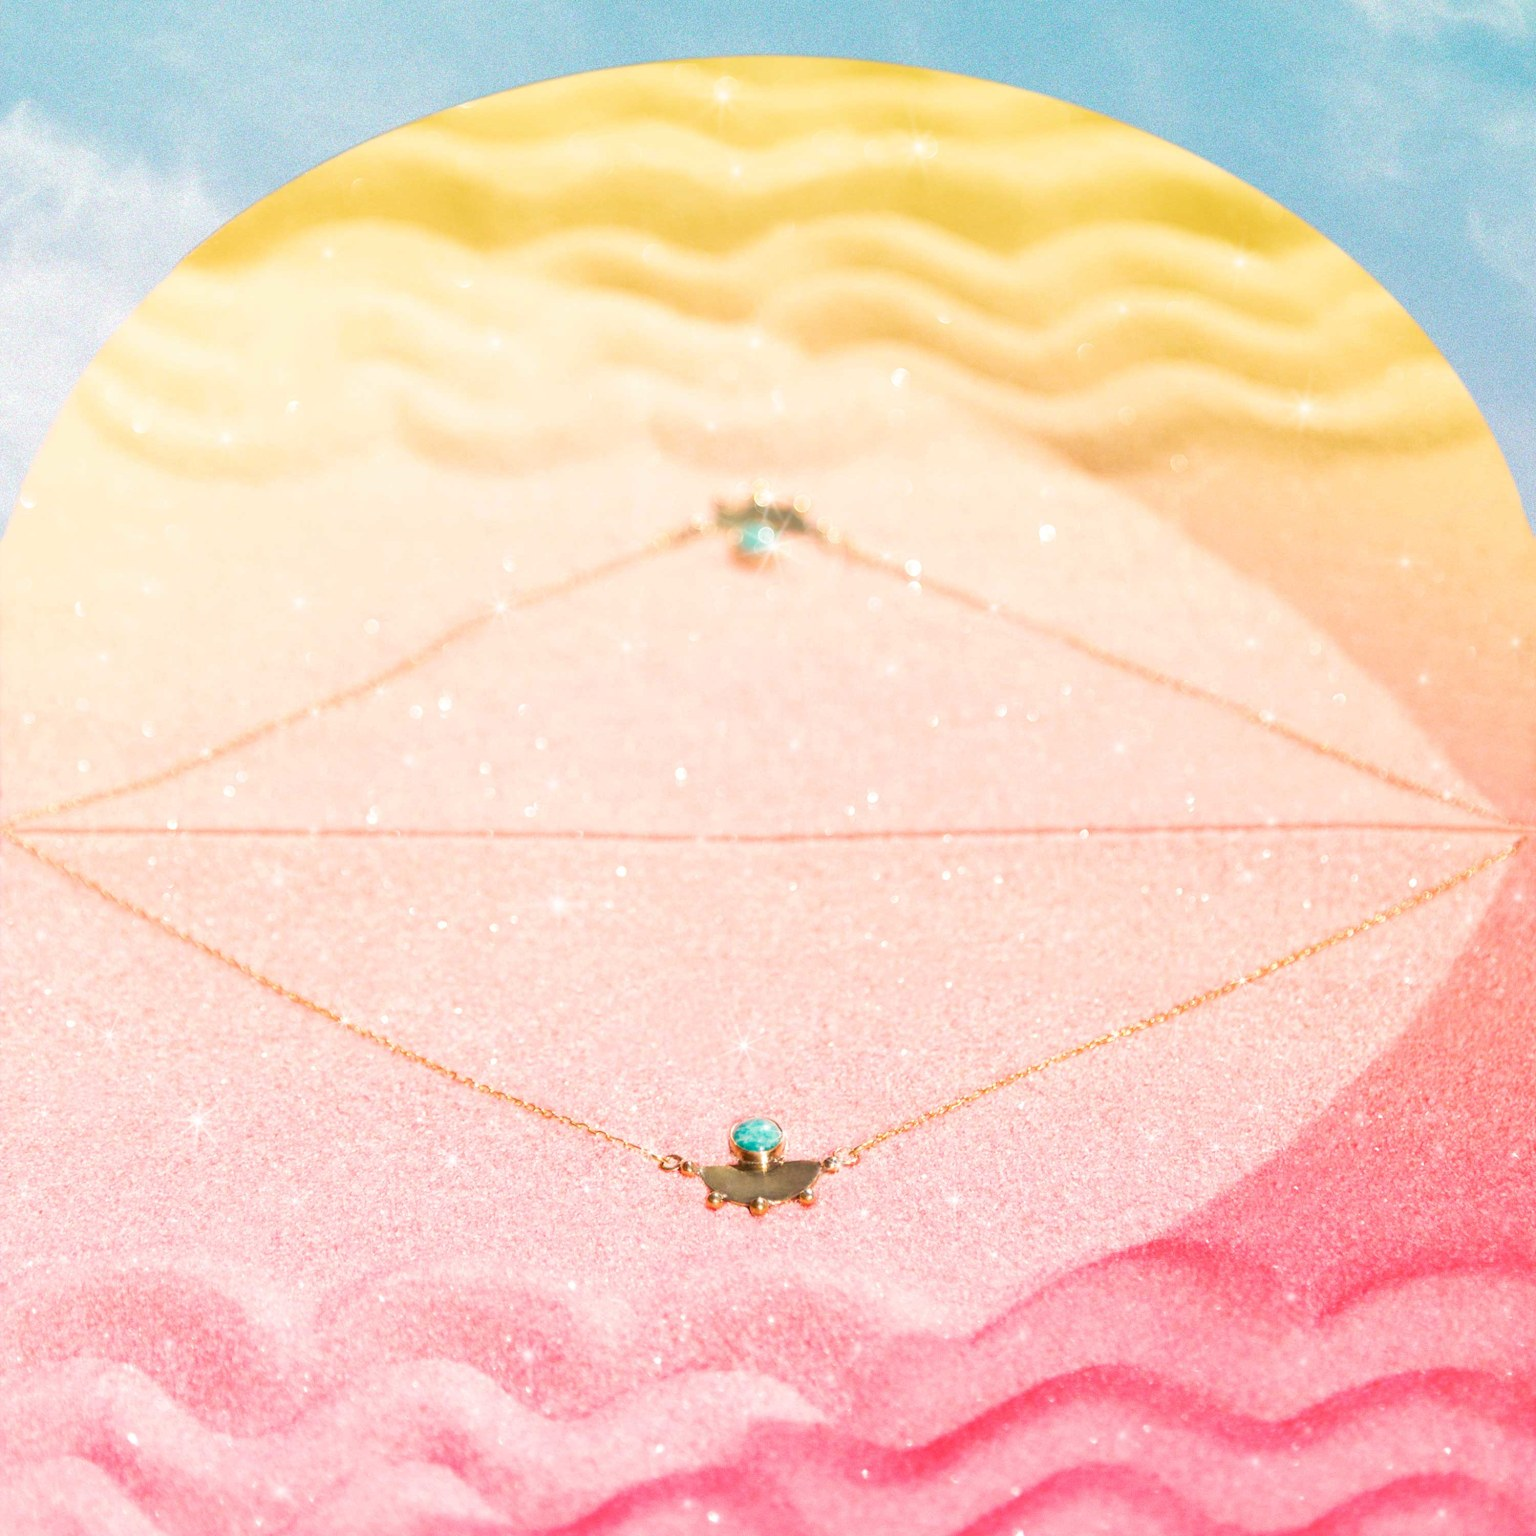 ENDLESS SUMMER campaign for Geoflora Jewelry